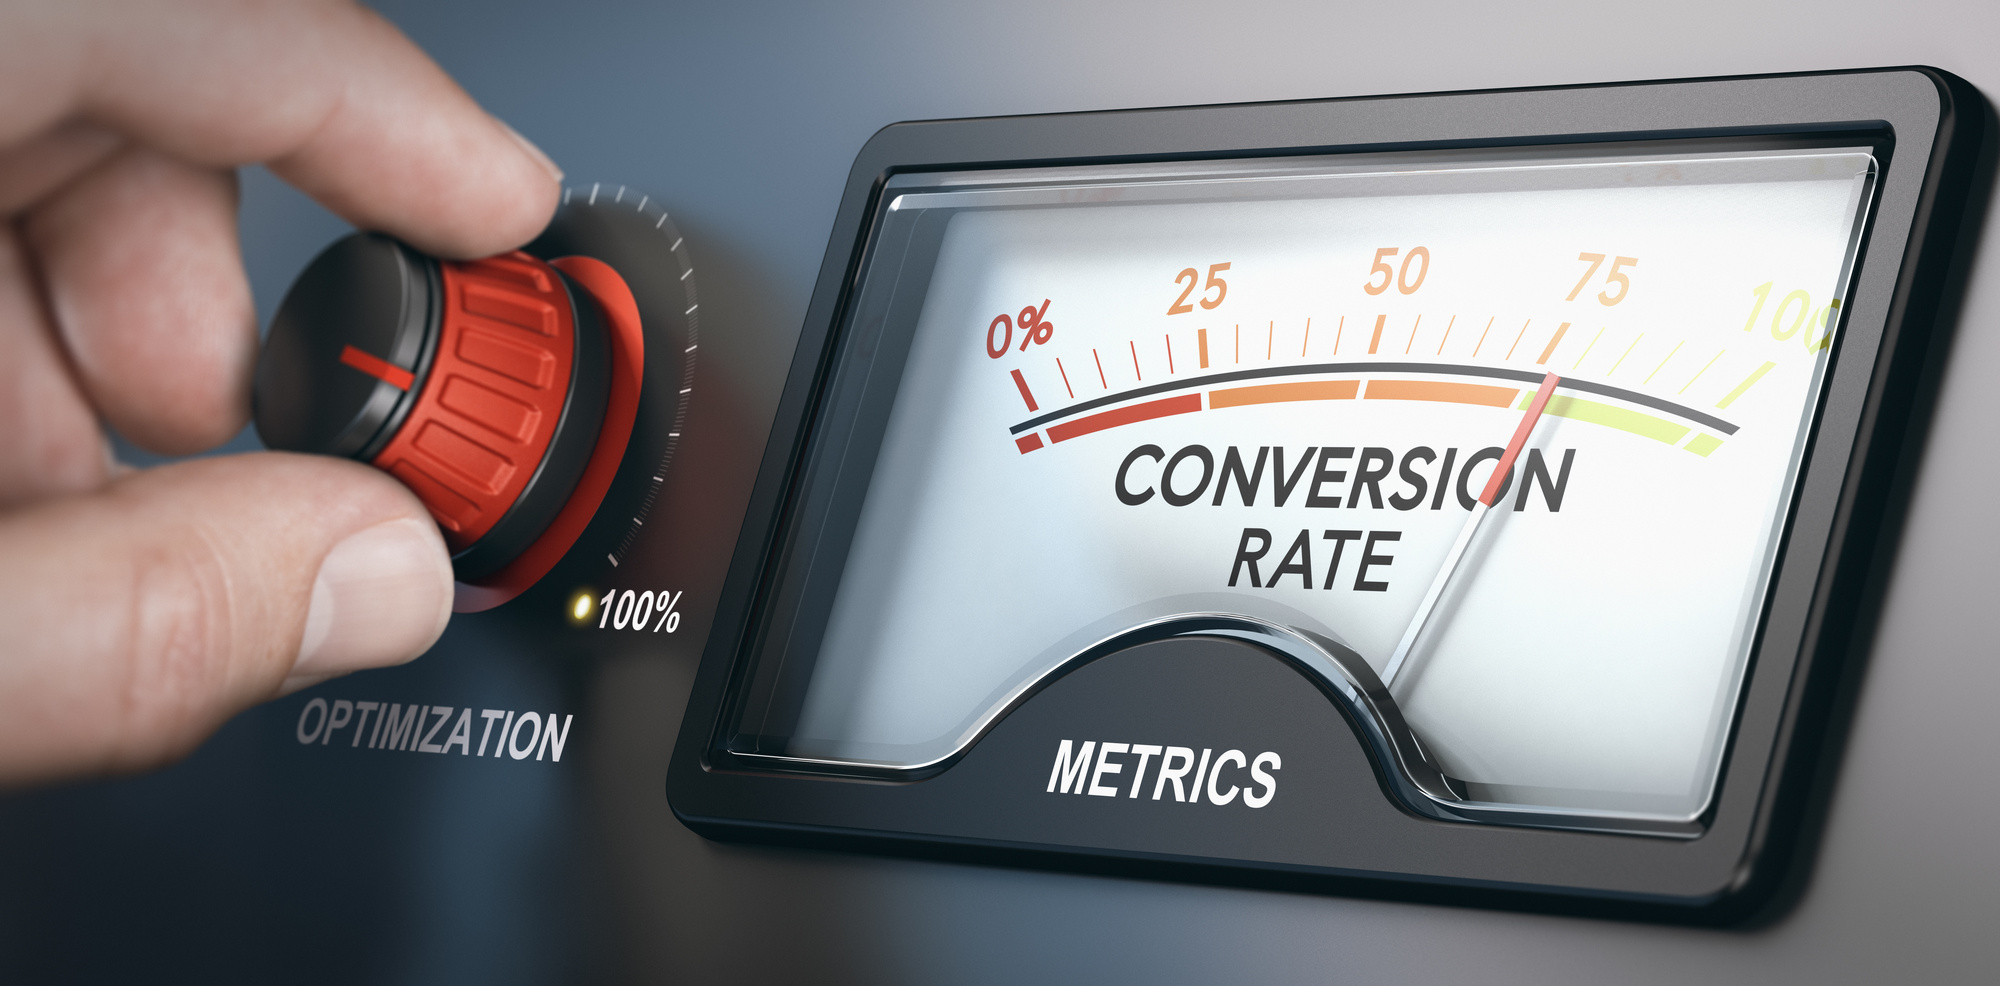 Is My Website Converting Leads? How to Calculate Conversion Rate